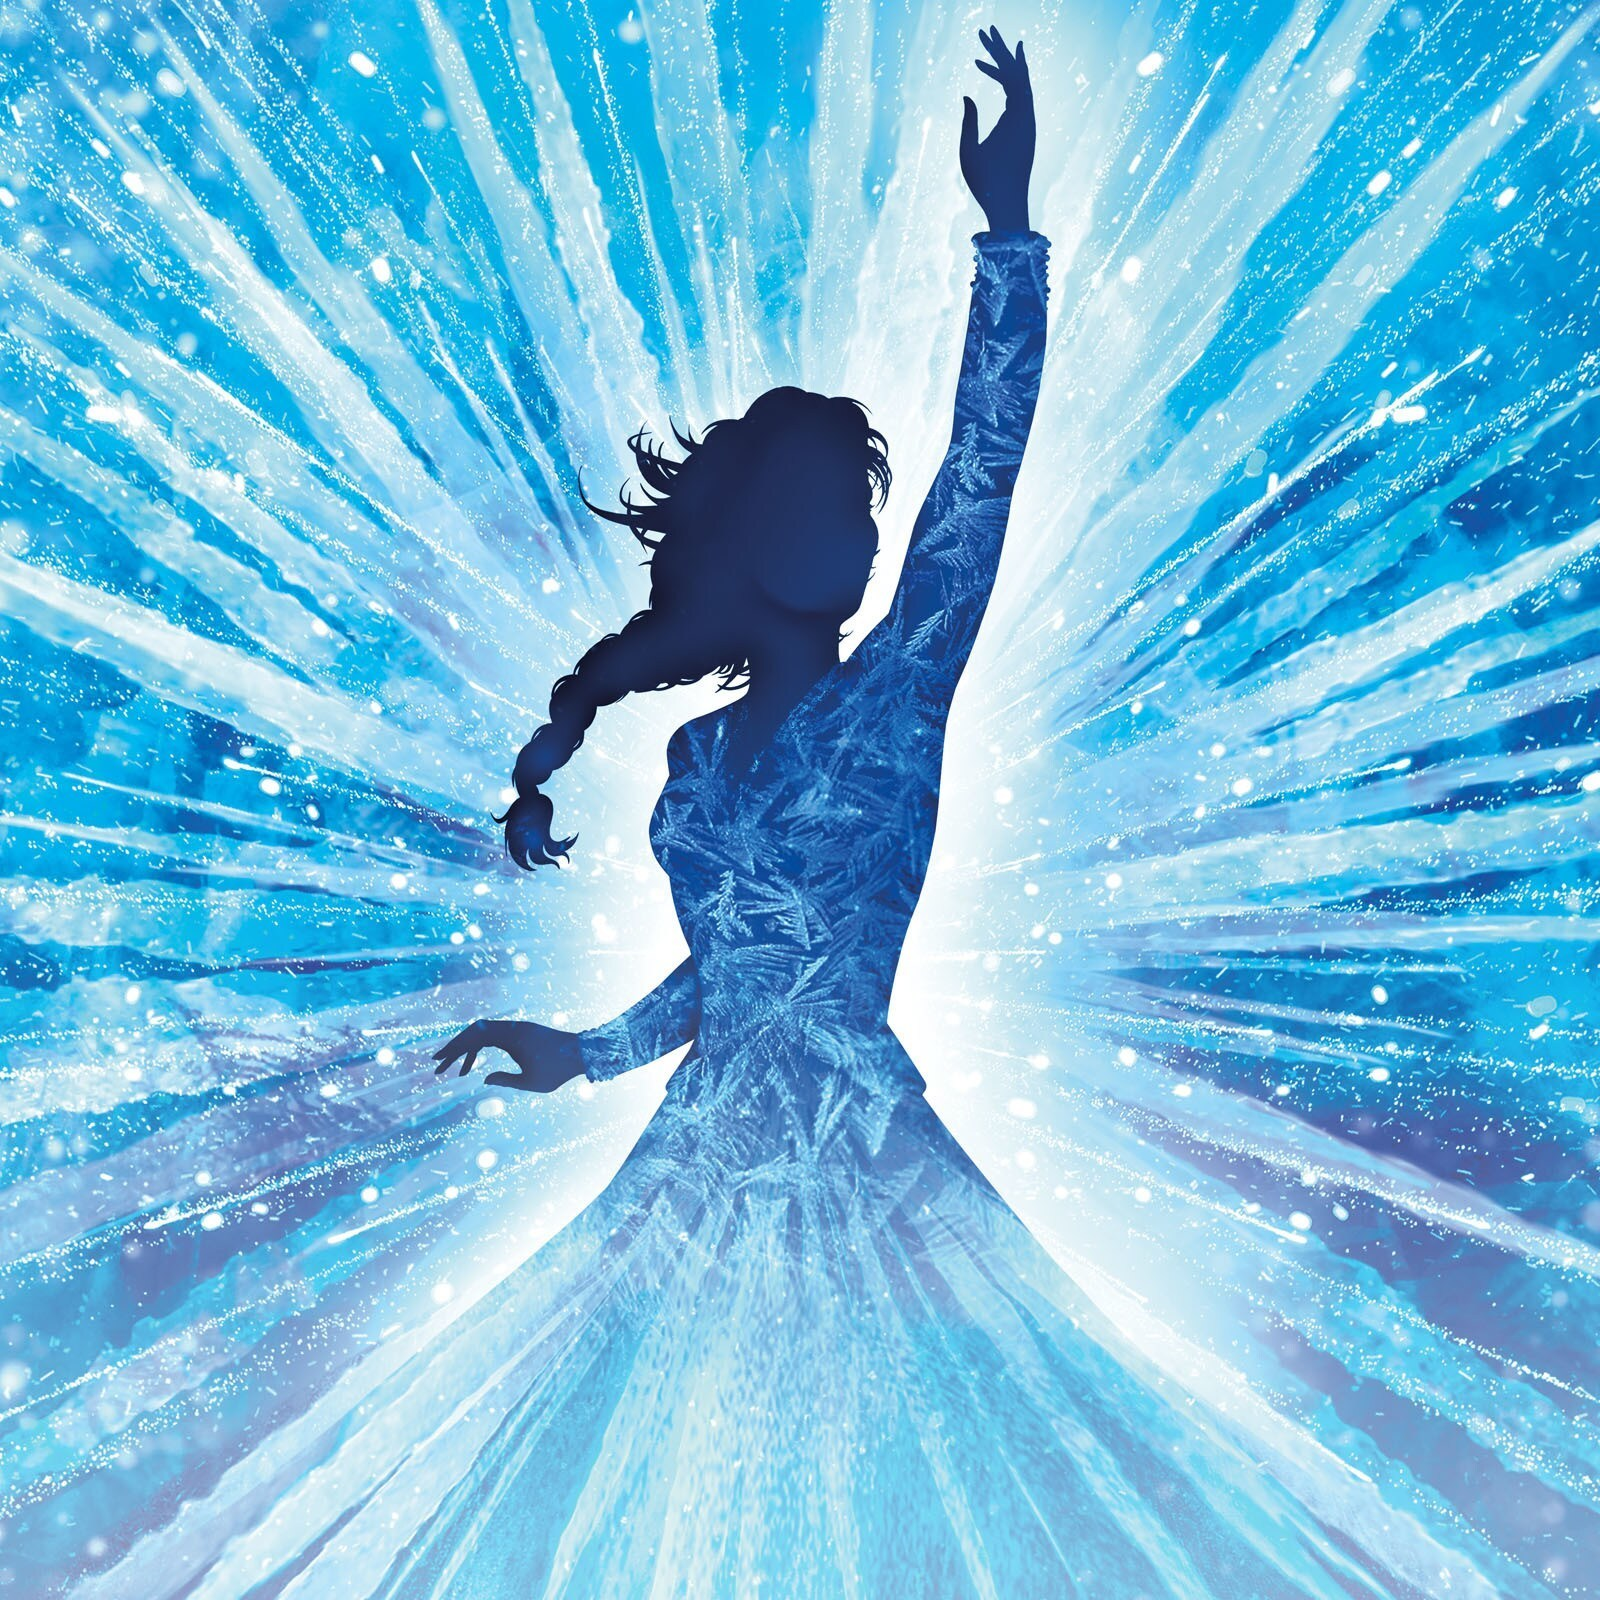 Frozen The Musical | Tickets on sale now